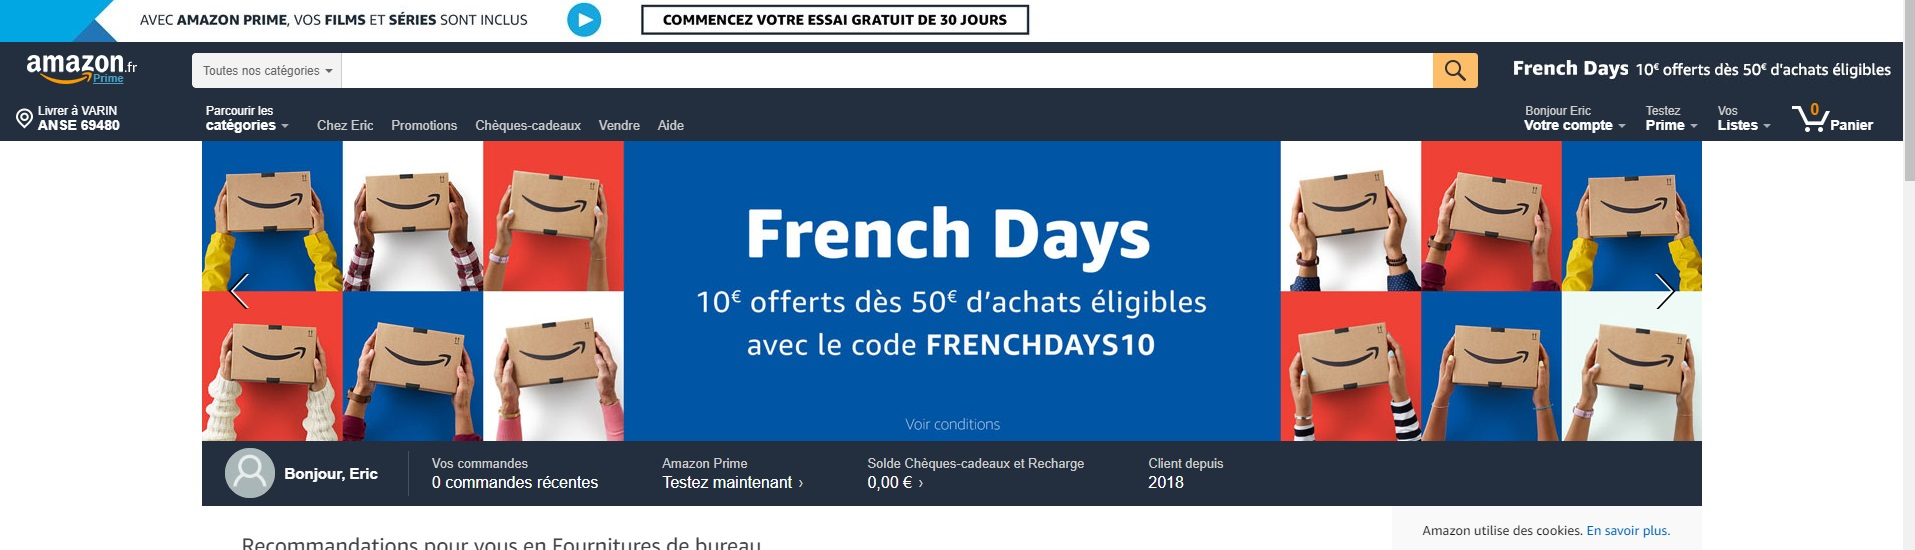 Amazon, un promoteur du e-commerce français